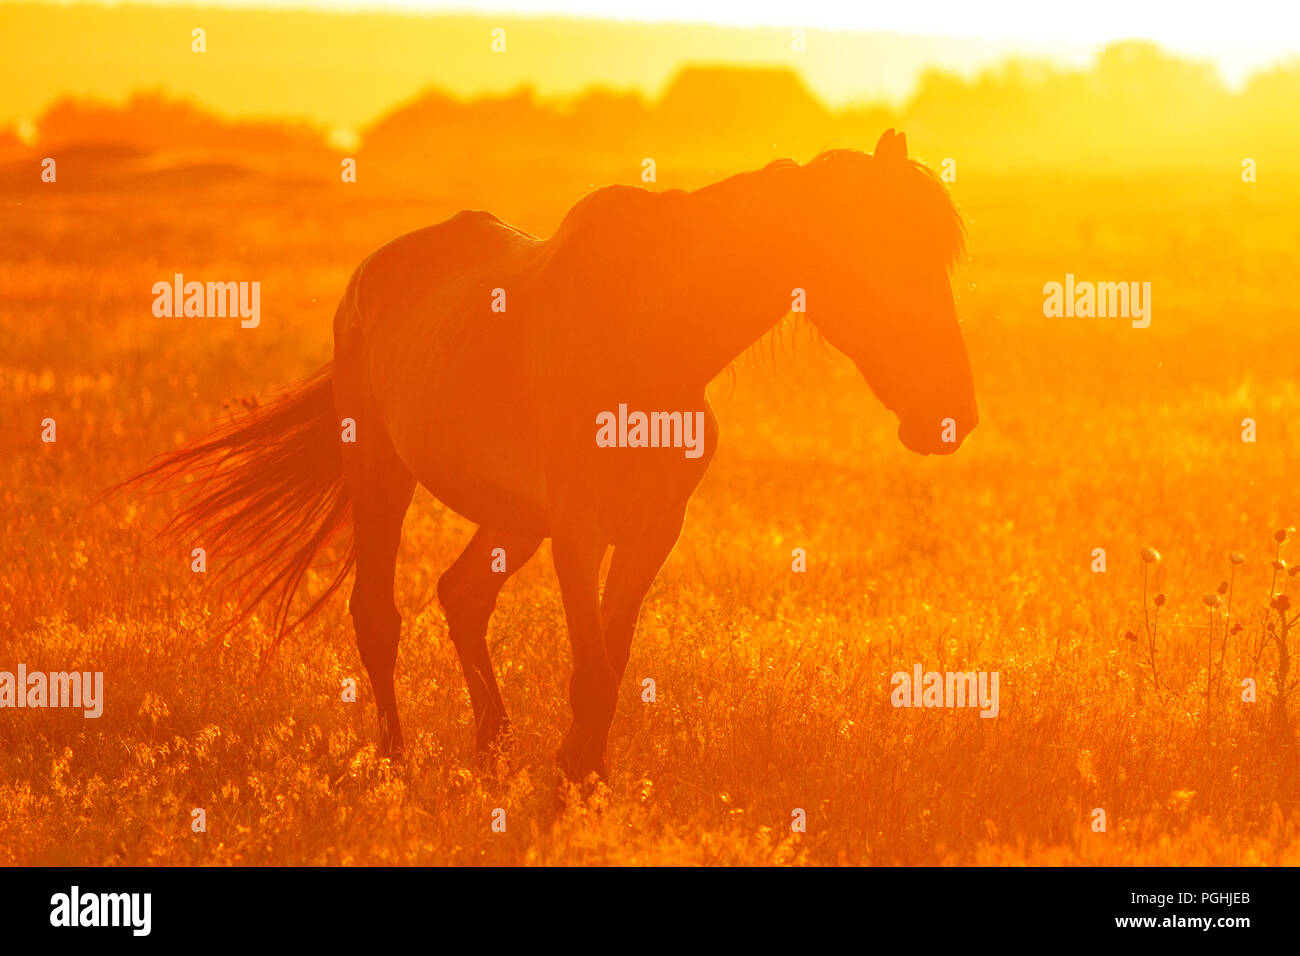 Silhouette of a horse in the field at sunset - Stock Image